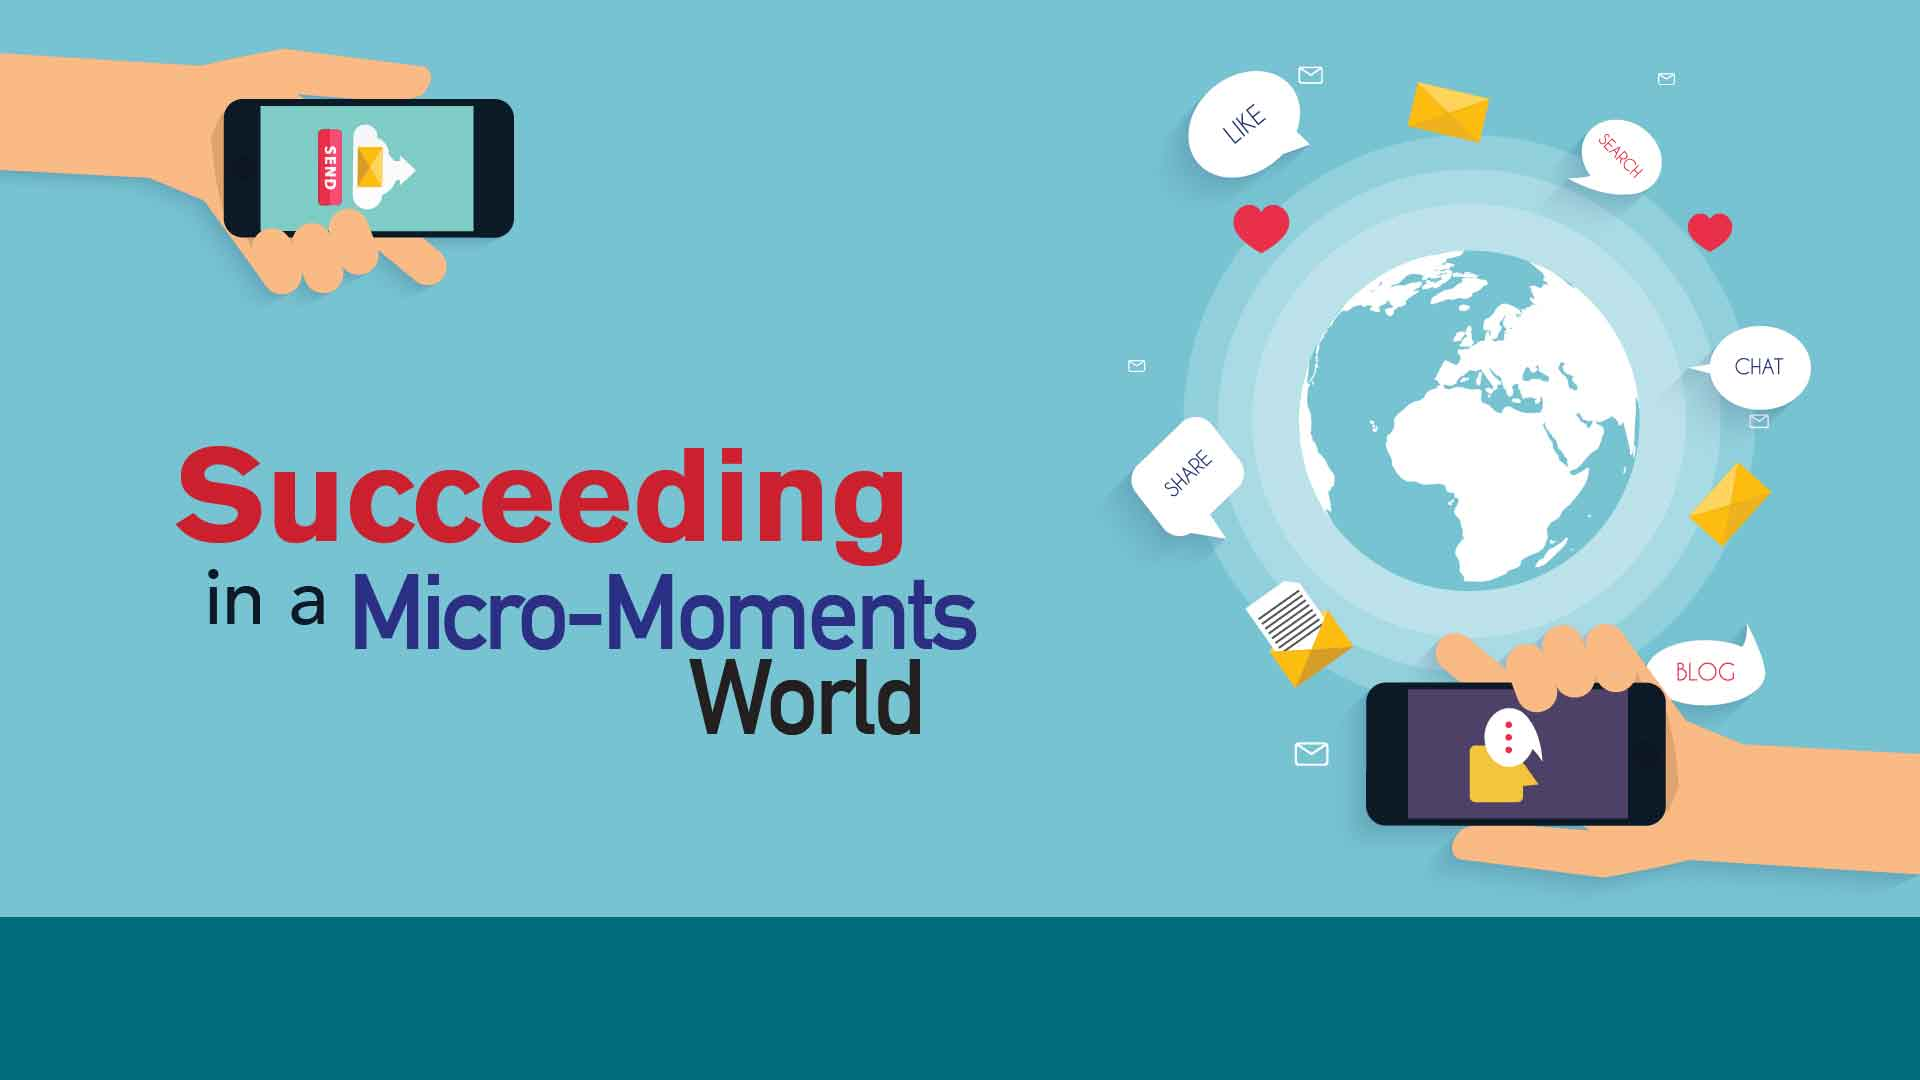 Succeeding-in-a-MicroMoments-World-Facebook-Events-01-01